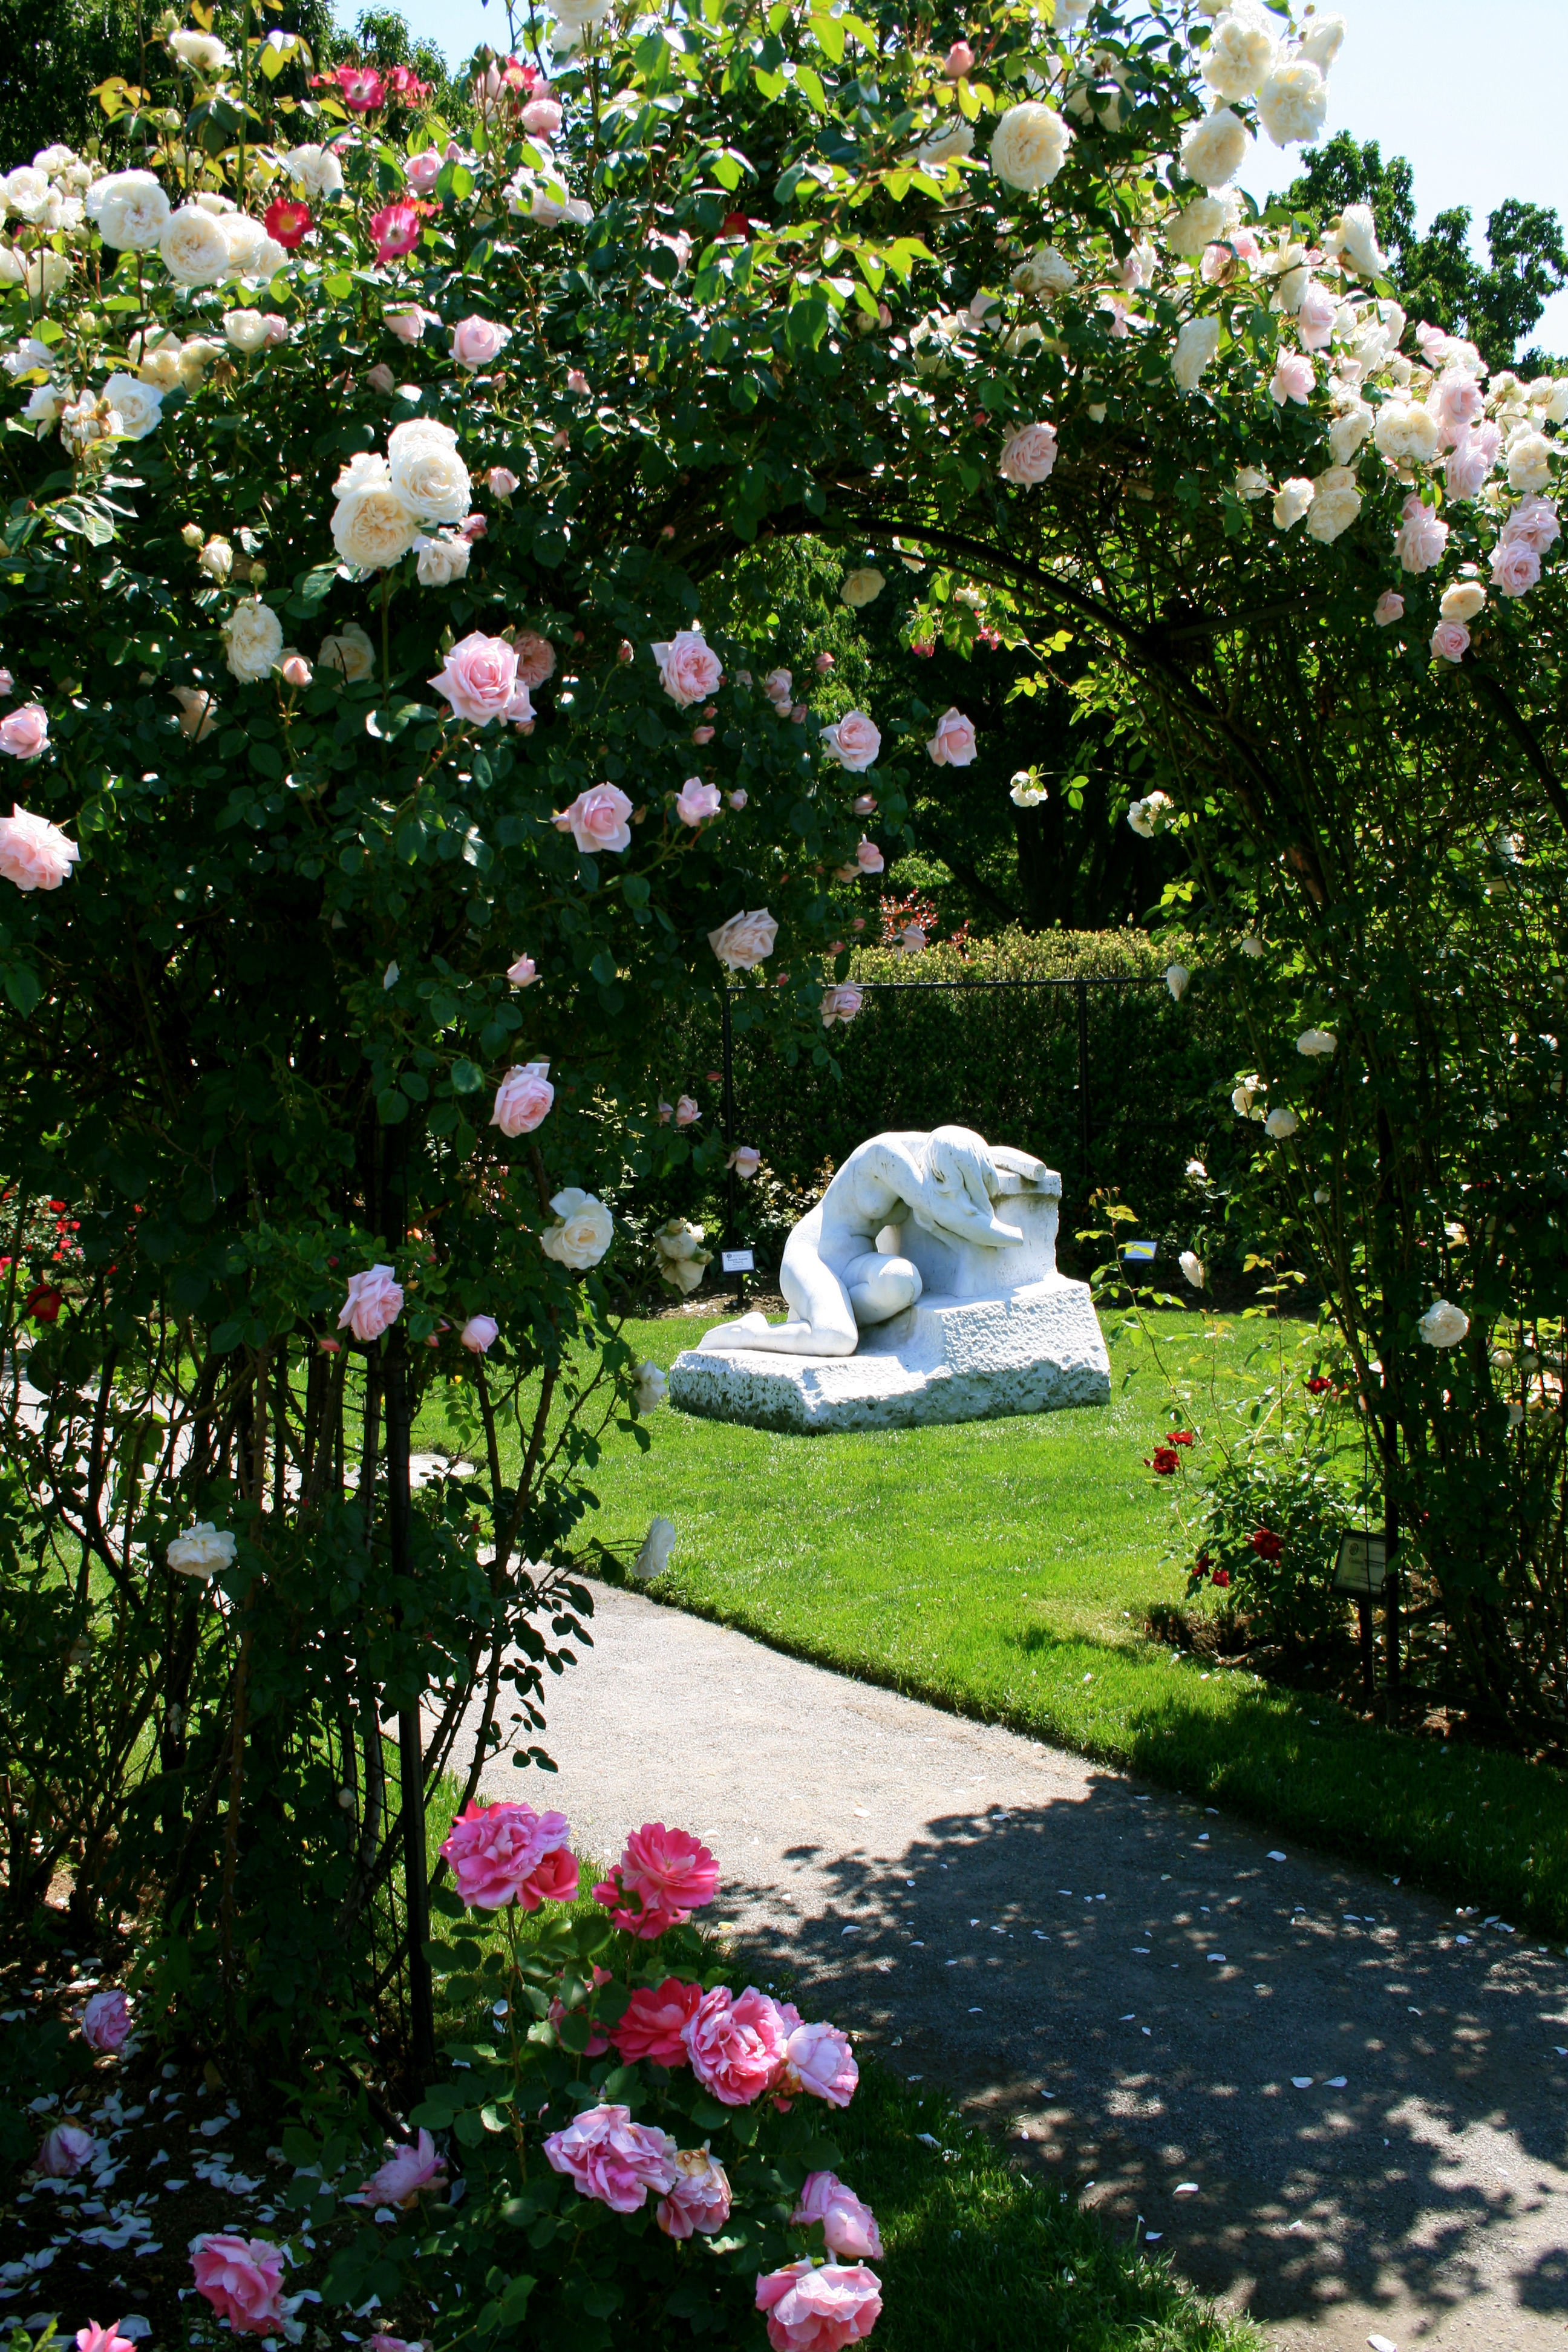 Roses In Garden: Landscape NotesLandscape Notes